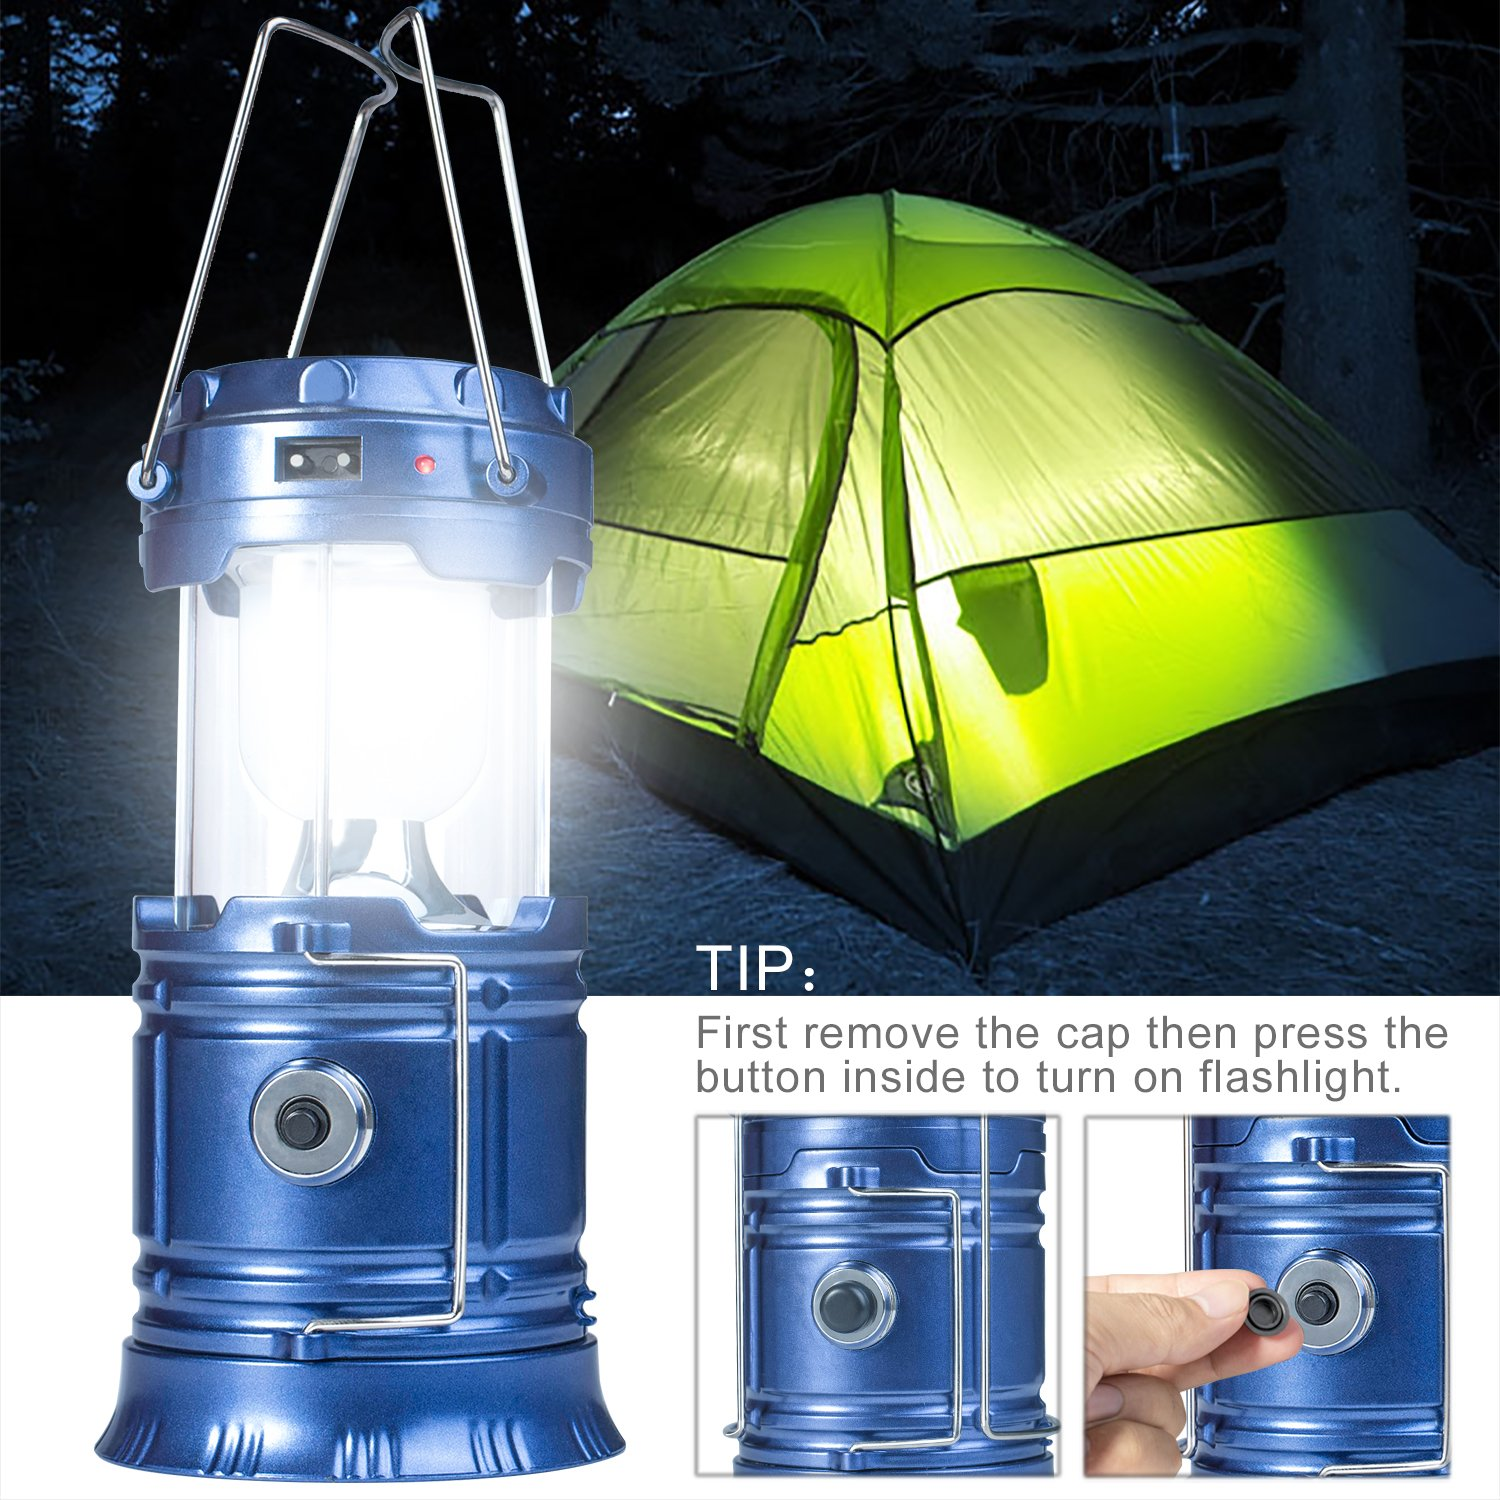 YIEASY Solar Camping Lanterns, 2 Pack Led Rechargeable Lantern Flashlight for Hurricane, Power Outages, Emergency, Collapsible and Portable (Blue) by YIEASY (Image #5)